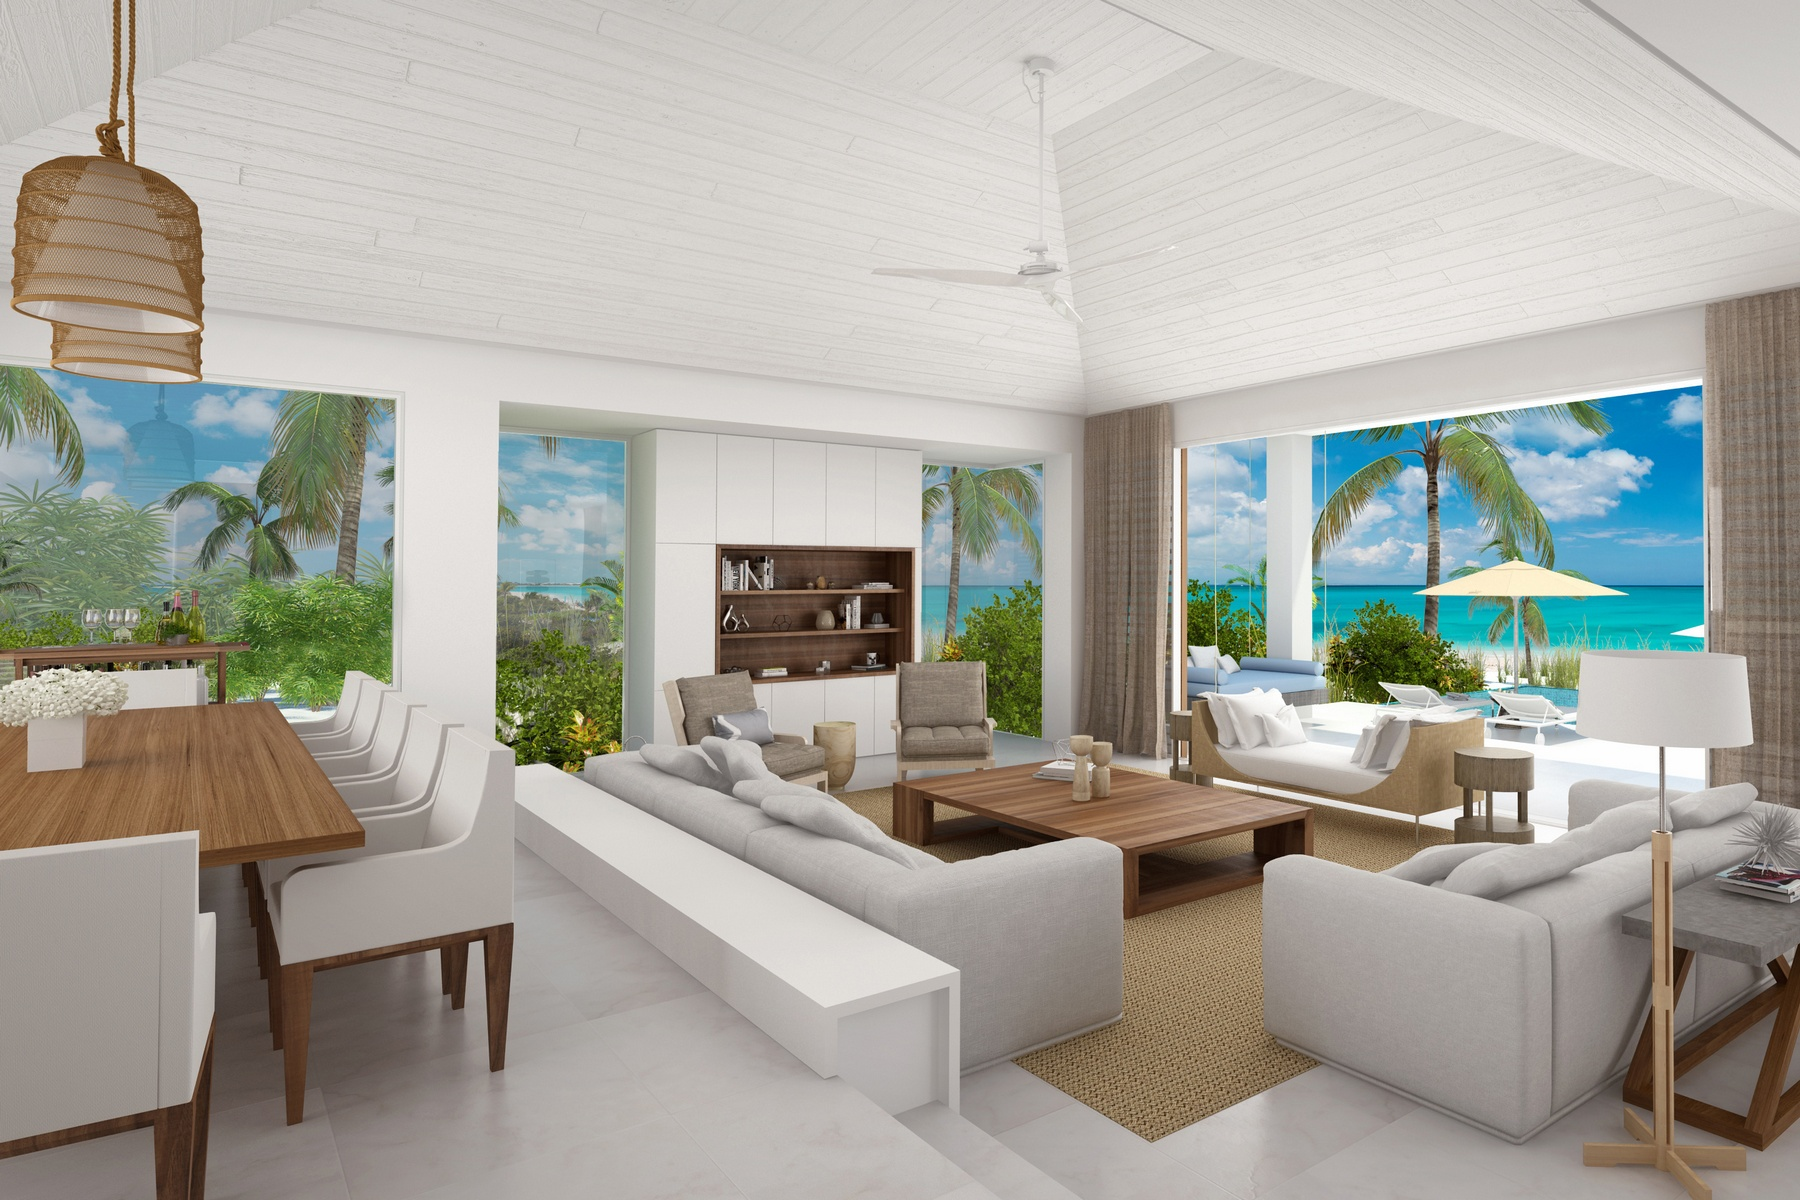 Additional photo for property listing at Beach Enclave Grace Bay - Design A Beach Enclave Grace Bay, Lot 8 - Design A Grace Bay, Providenciales TKCA 1ZZ Islas Turcas Y Caicos